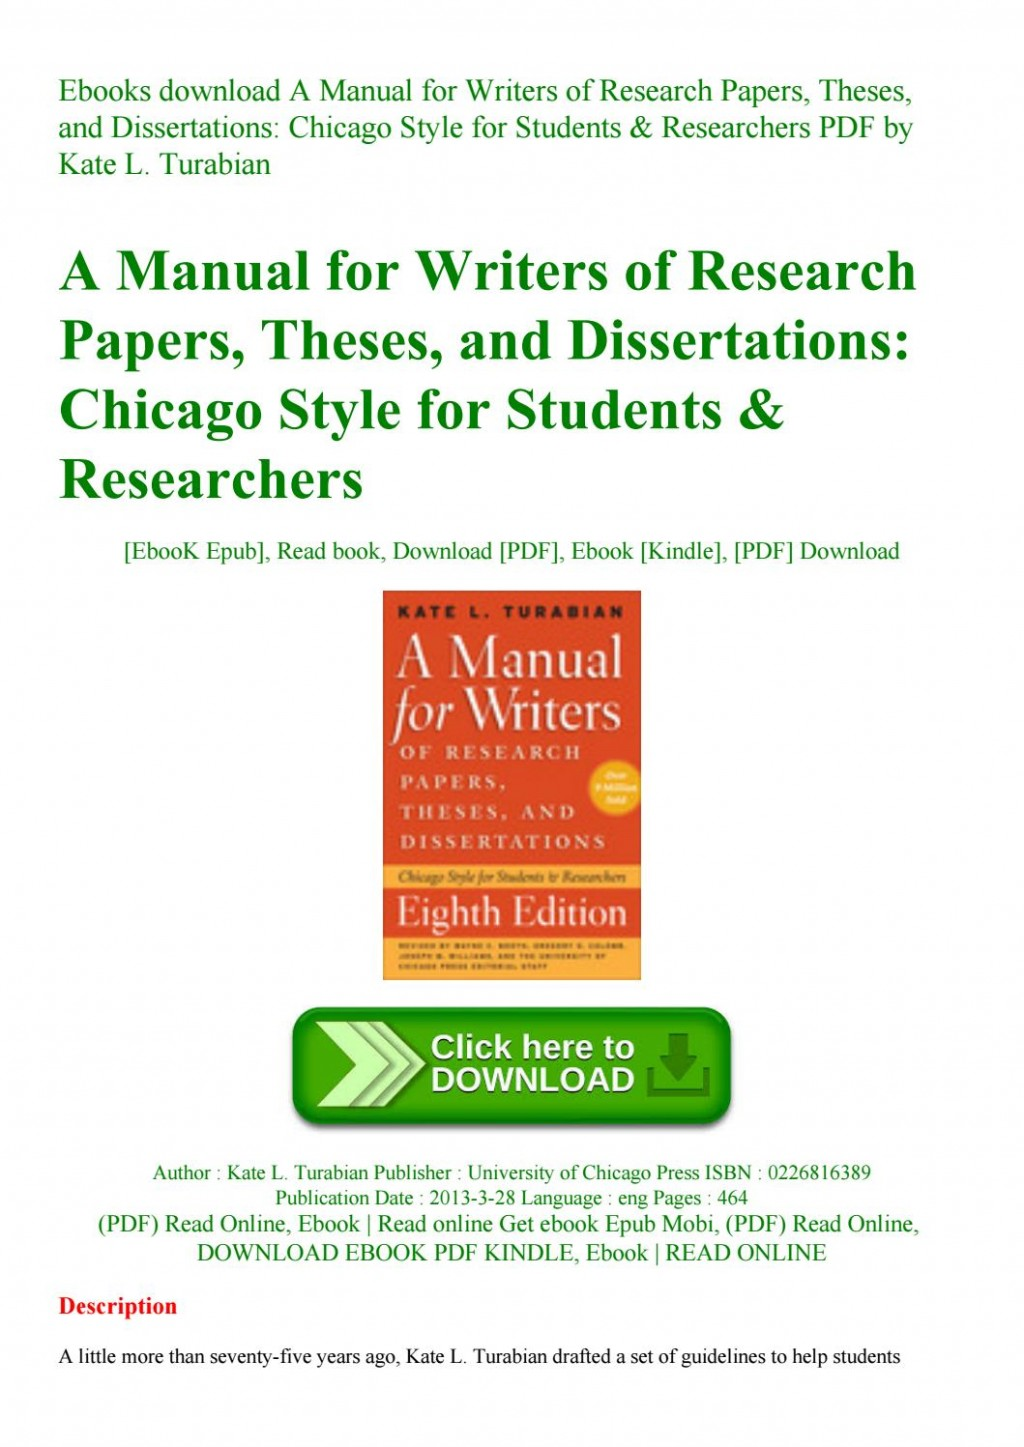 009 Manual For Writers Of Research Papers Theses And Dissertations Chicago Style Students Paper Page 1 Rare A Large